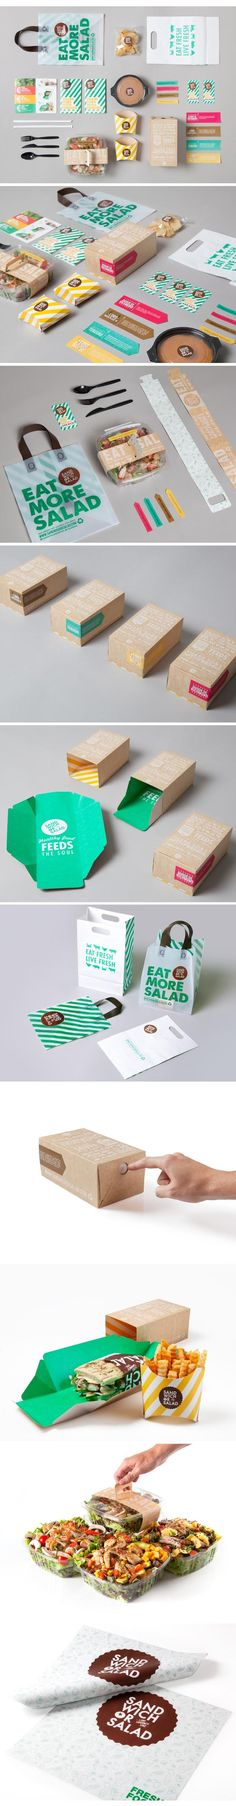 Sandwich or Salad by Masif #branding#salad#package#design#follow#fun#teal#eat